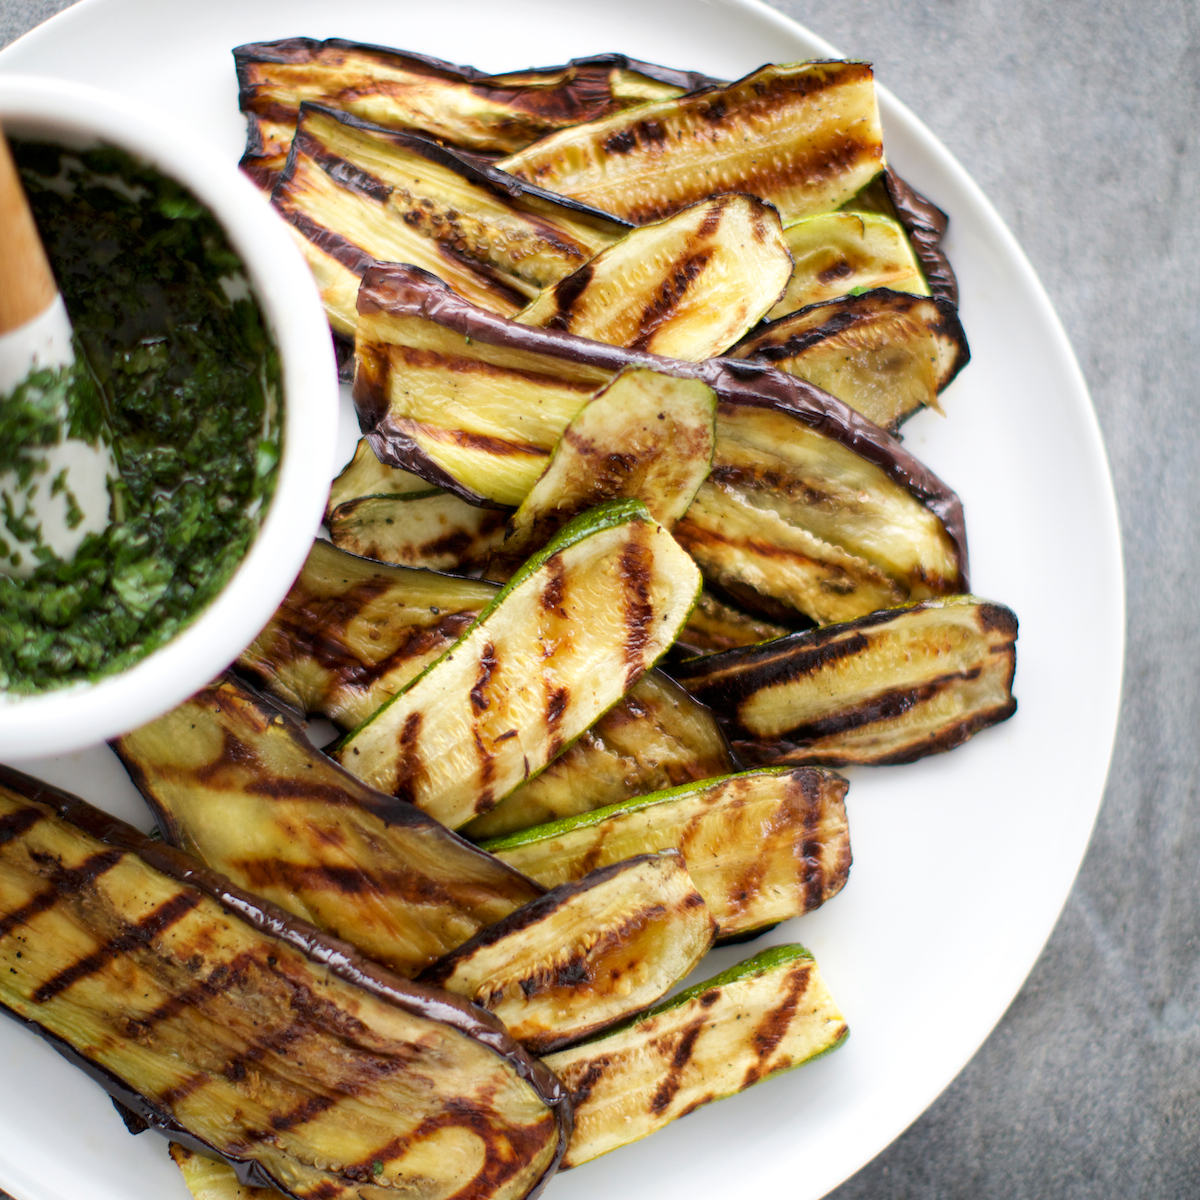 May 20: Grilled Eggplant and Zucchini Salad with Salsa Verde